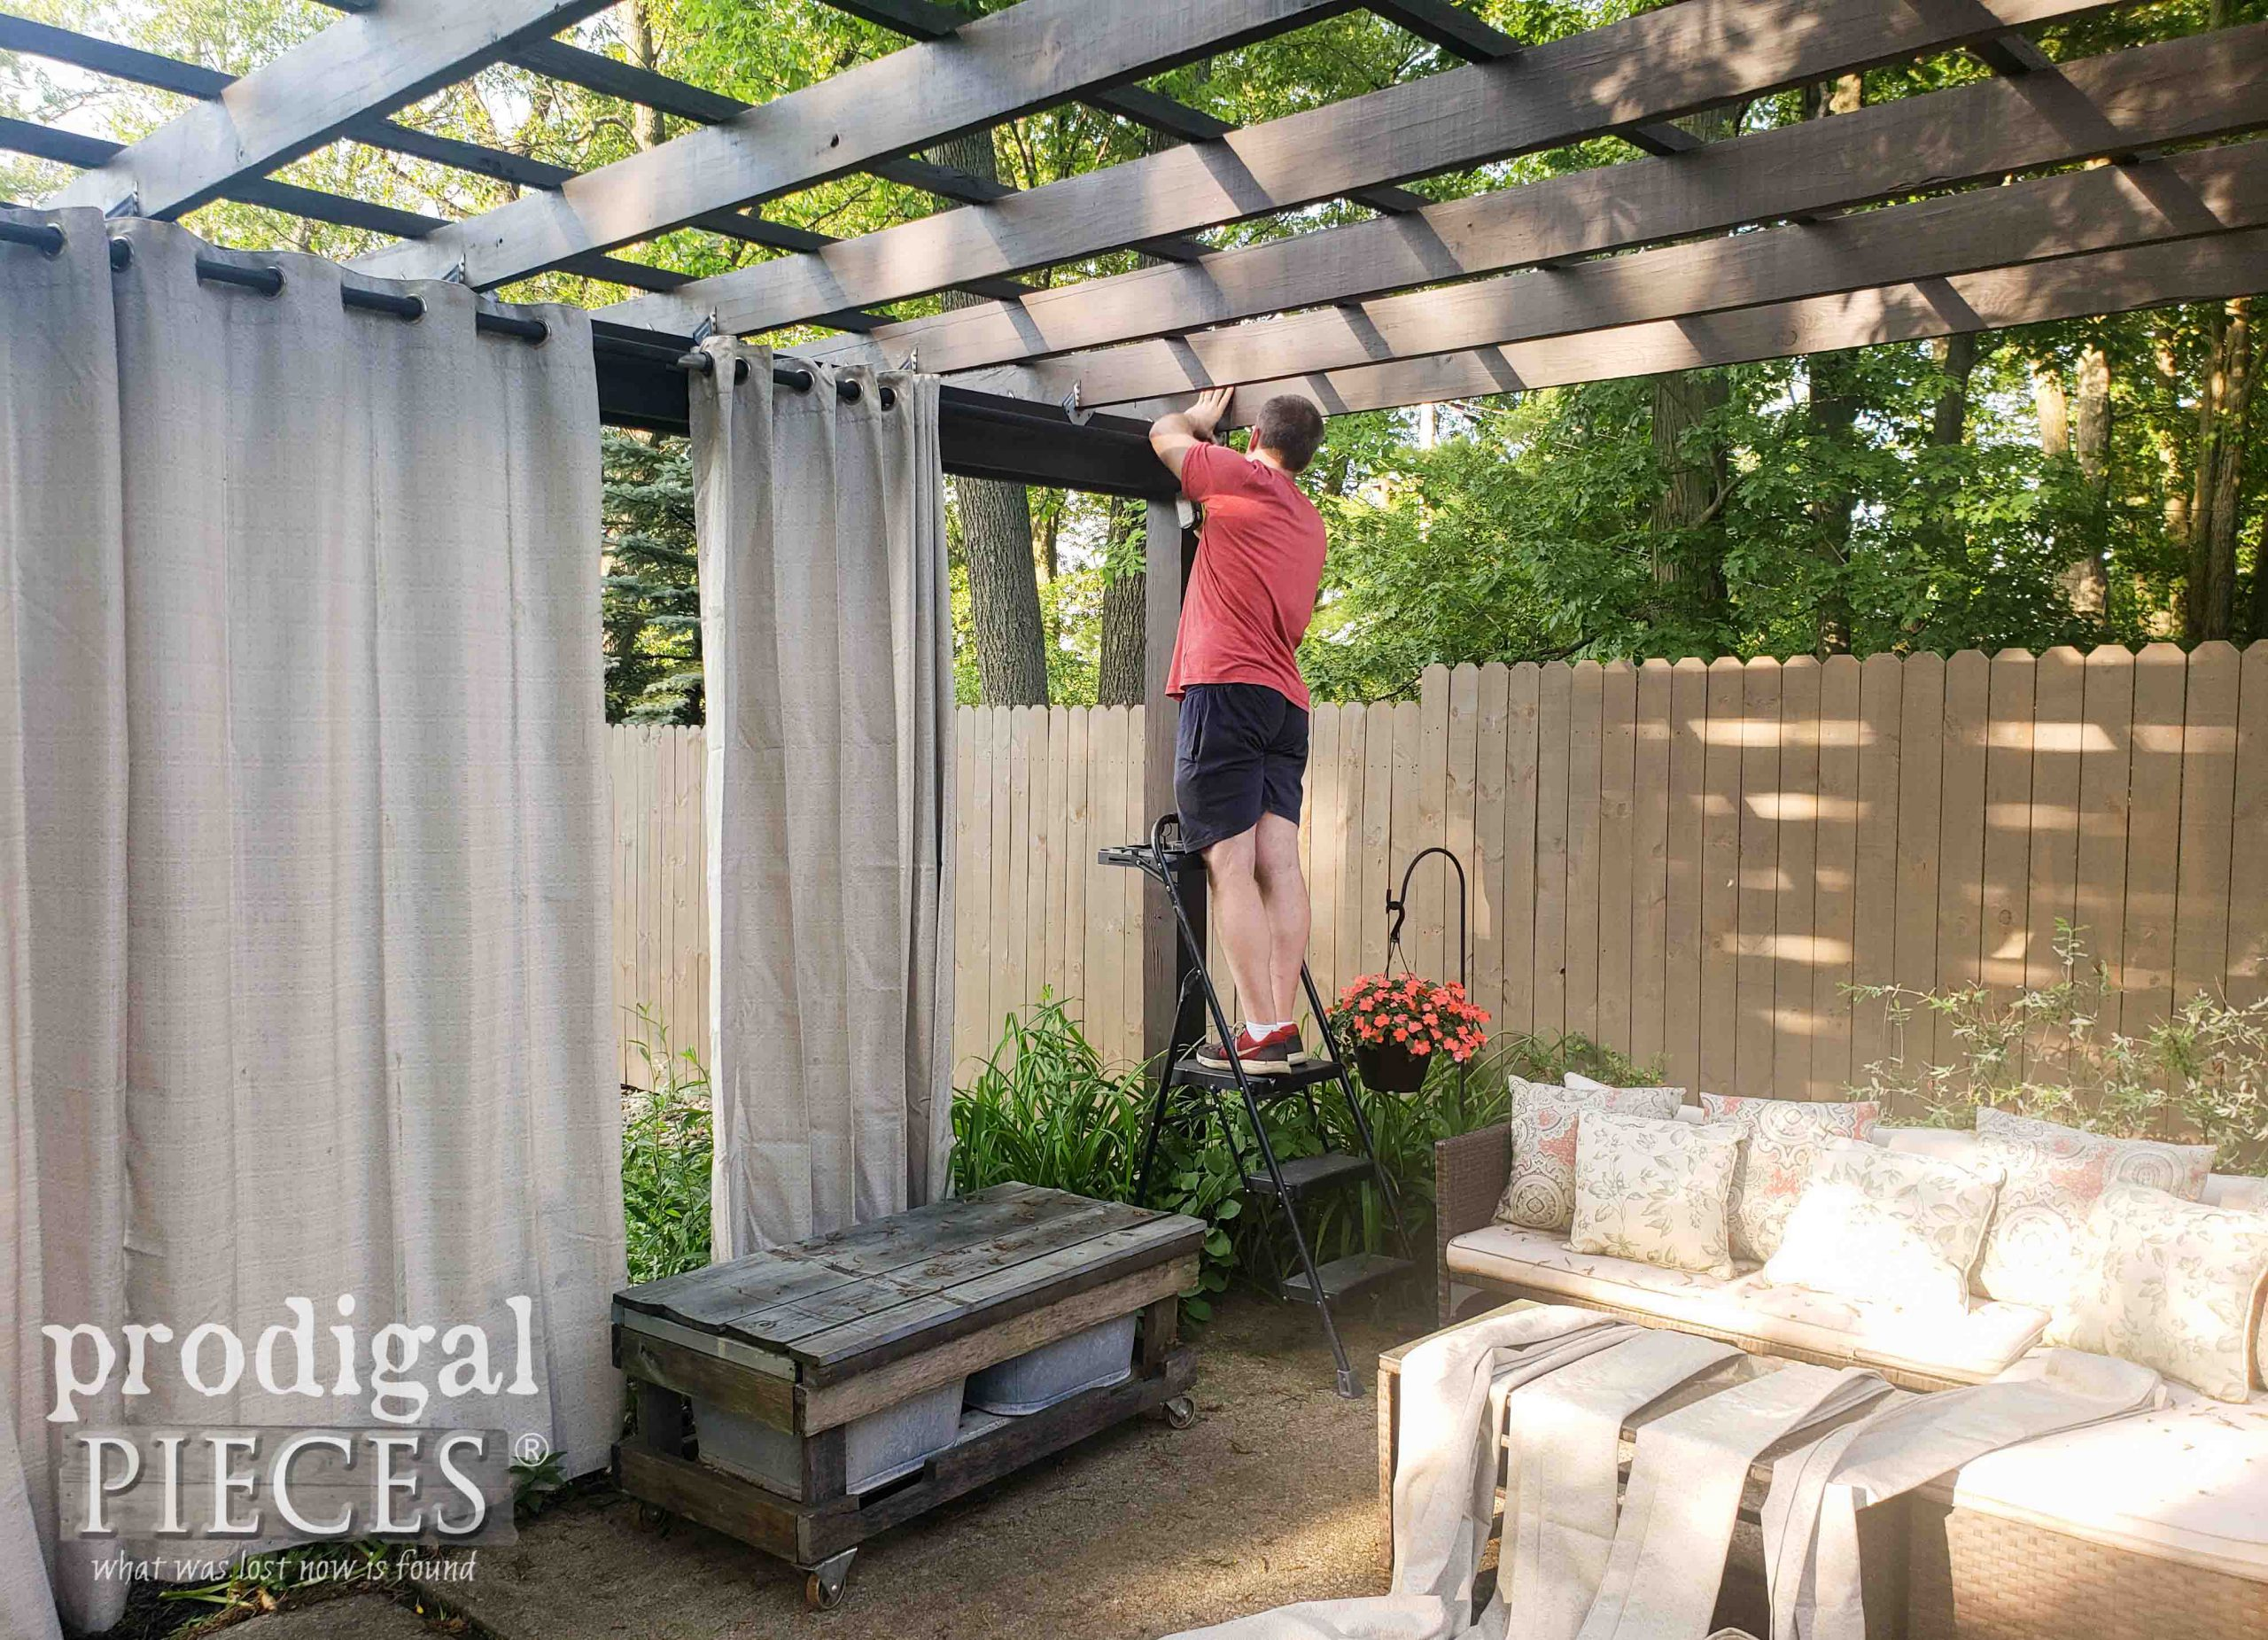 Hanging Patio Curtains | Prodigal Pieces | prodigalpieces.com #prodigalpieces